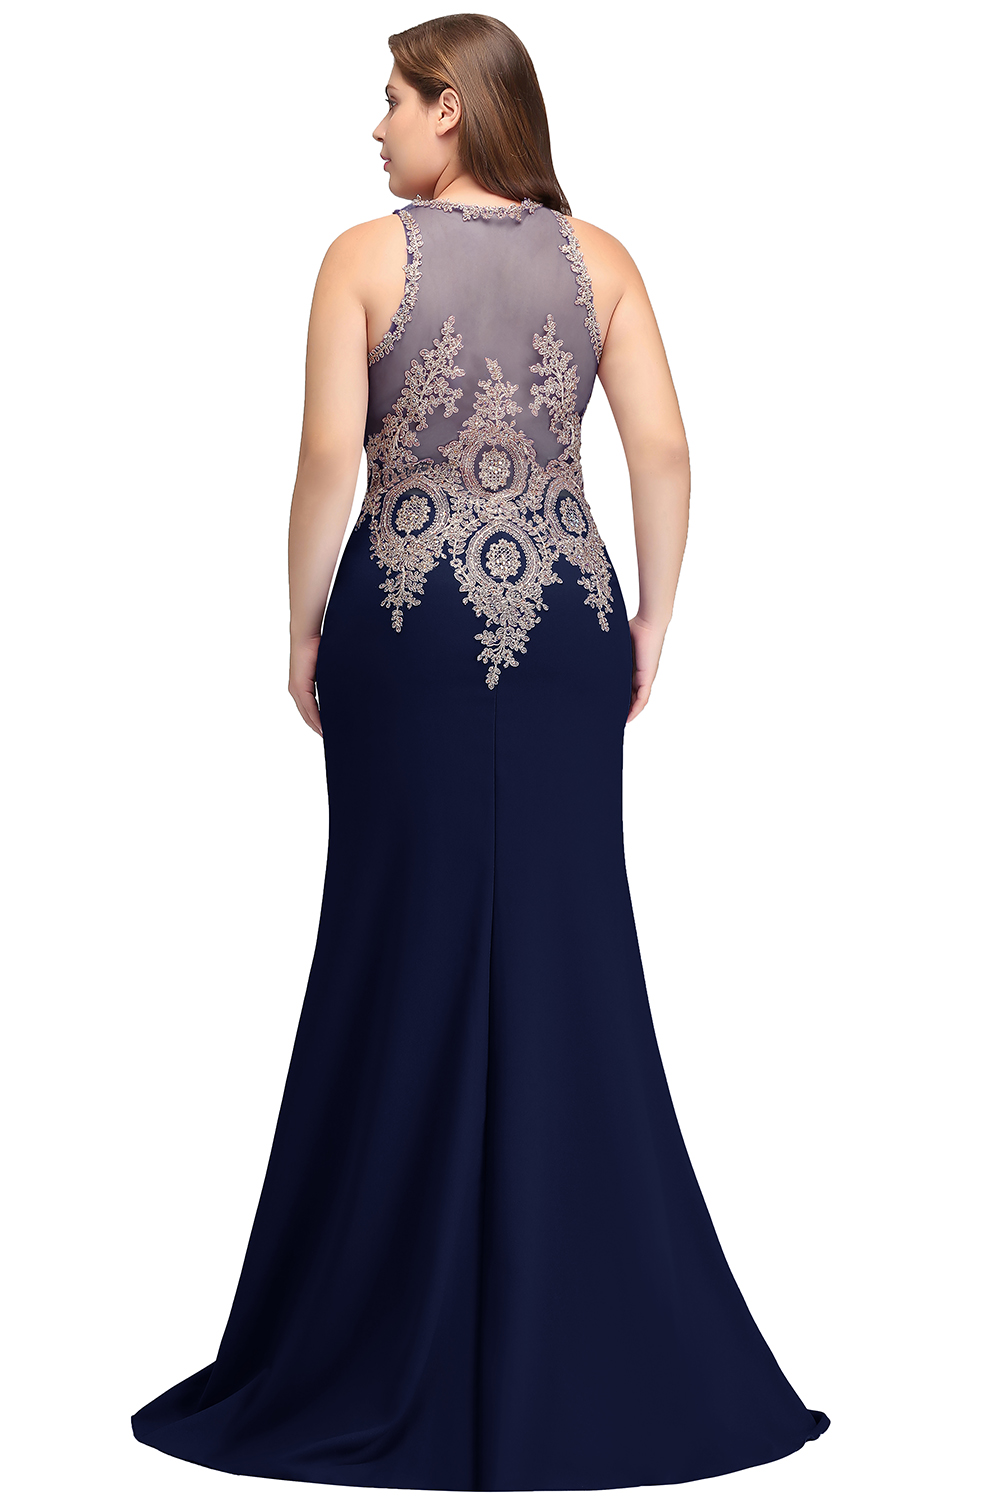 US $45.6 48% OFF|2019 Mother of the Bride Dresses plus size satin Dress  Elegant sleeveless applique Long Mermaid Evening Dress Mother Bride Gown-in  ...